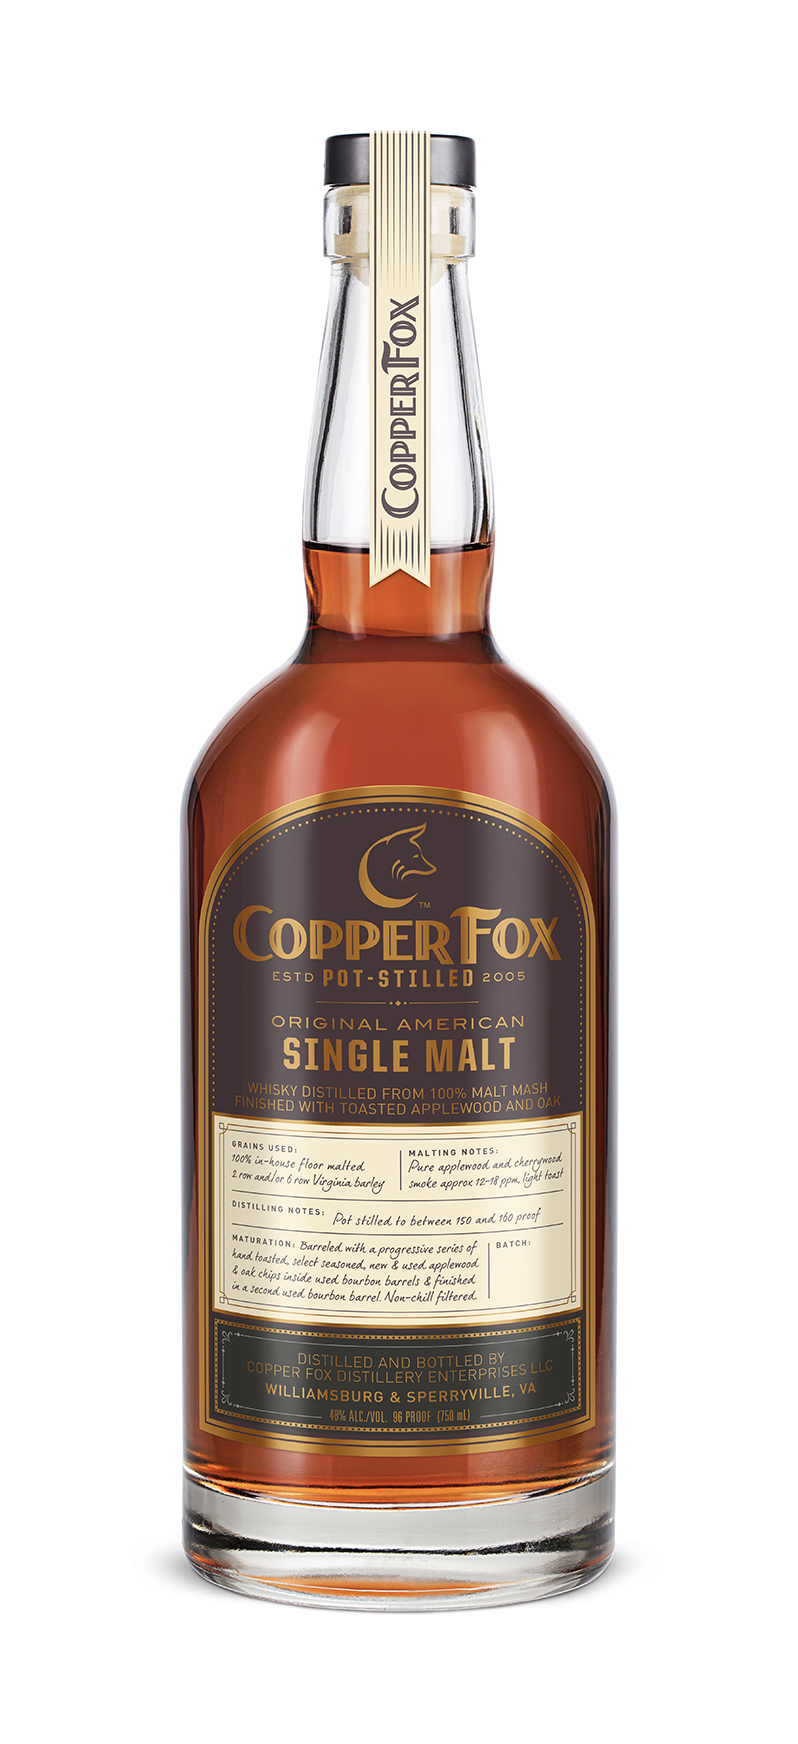 COPPER FOX ORIGINAL AMERICAN SINGLE MALT - Our signature style that started it all and the foundation for our approach to making great tasting whisky. 100% hand malted Virginia barley, dried with hand- cut apple wood and cherry wood smoke. Double pot-distilled at a low 150 to 160 proof to enhance the fruitiness.Matured in ex-bourbon barrels with progressive infusions of toasted apple wood and oak chips.TASTING NOTESNose: Rich aromas of suede, olive tapenade, honey and wood firePalate: dried mango chutney and clay with a silky dry fruitiness, medium-full bodyFinish: Long and spicy, with wood smoke, orange marmalade on rye toast and root beer floatDistinctively flavorful, brawny and balanced.Non-chill filtered. 48% ABV/96 ProofSmokey and complex; a unique, distinctively flavorful, brawny and balanced whisky. A great choice for artisan cocktails or sipping.Back to GalleryNext ›